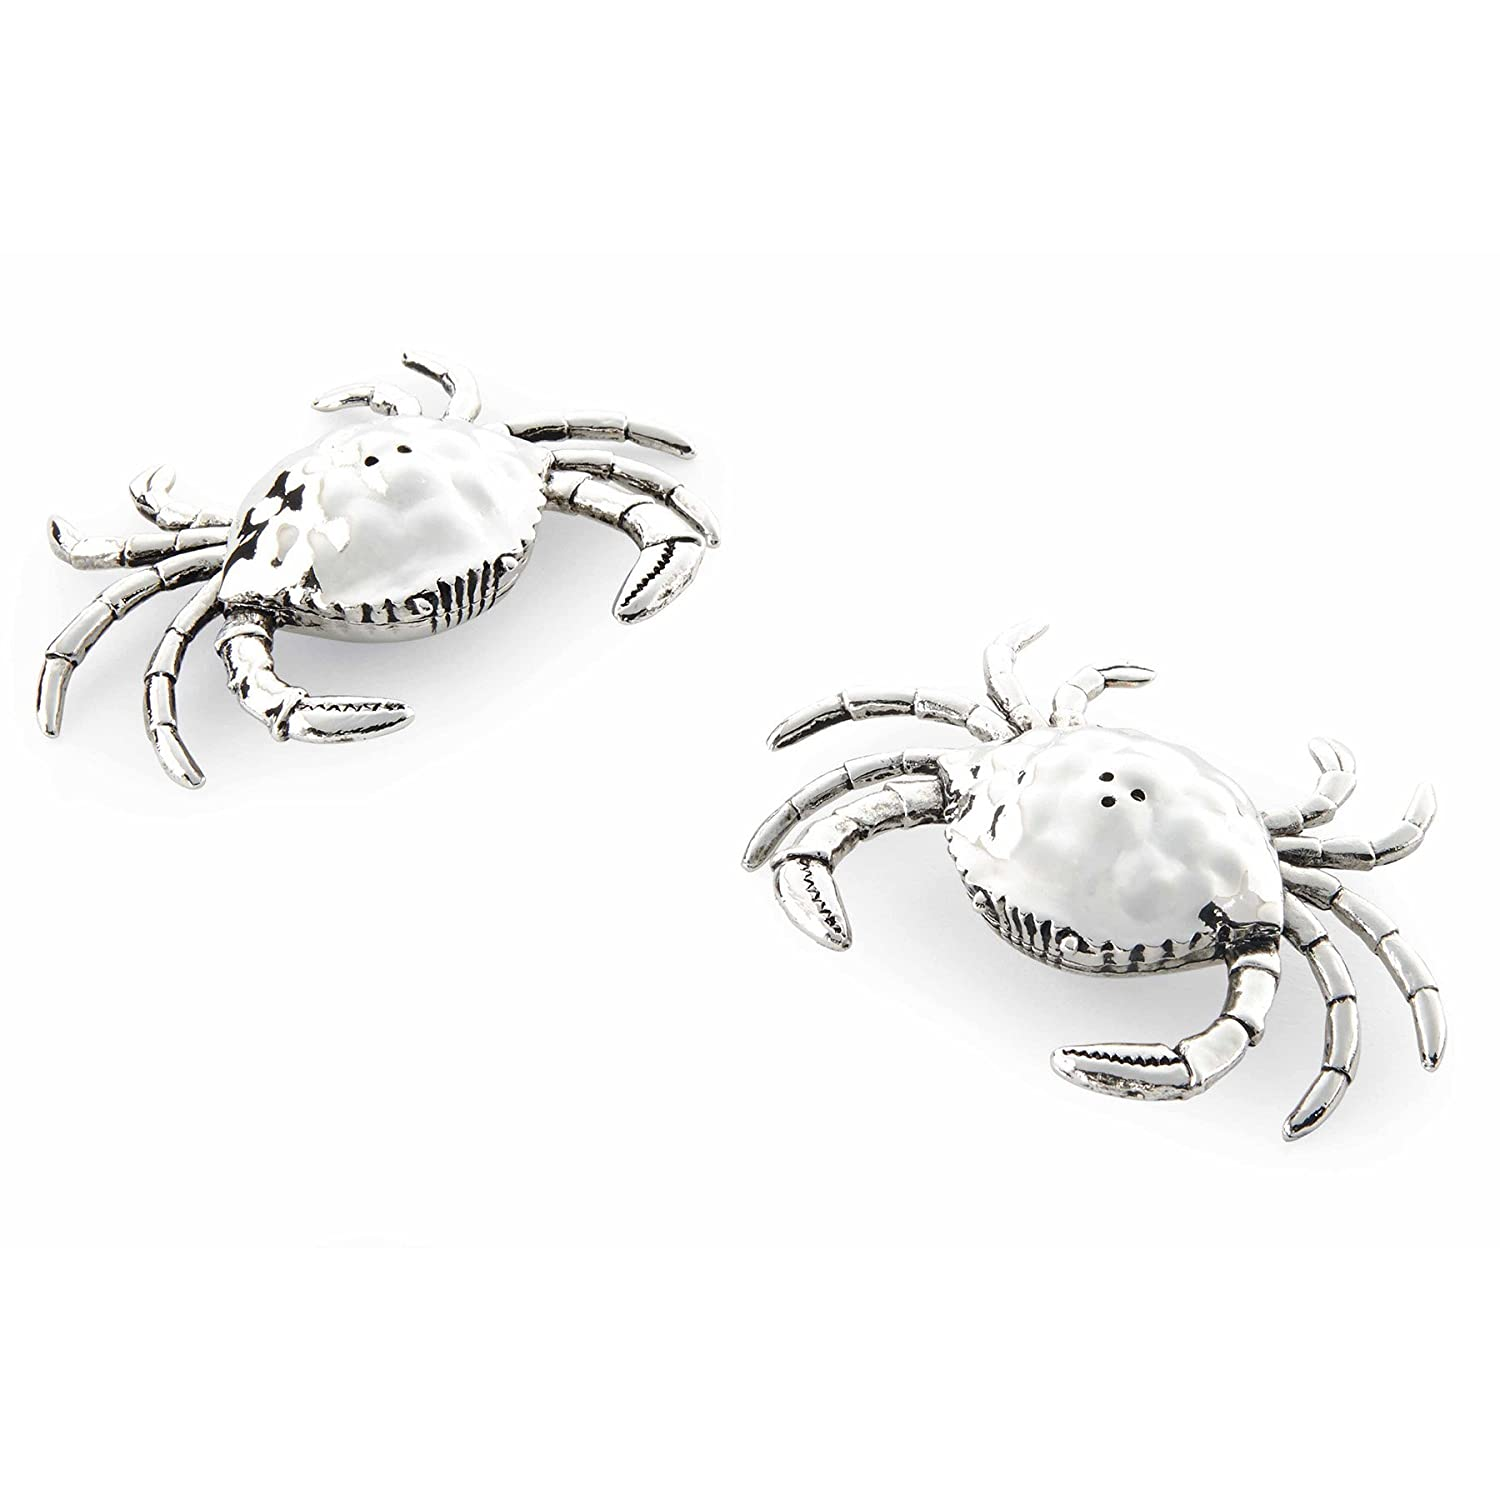 Christmas Tablescape Decor - Silver metal crab salt & pepper shaker set by Mud Pie